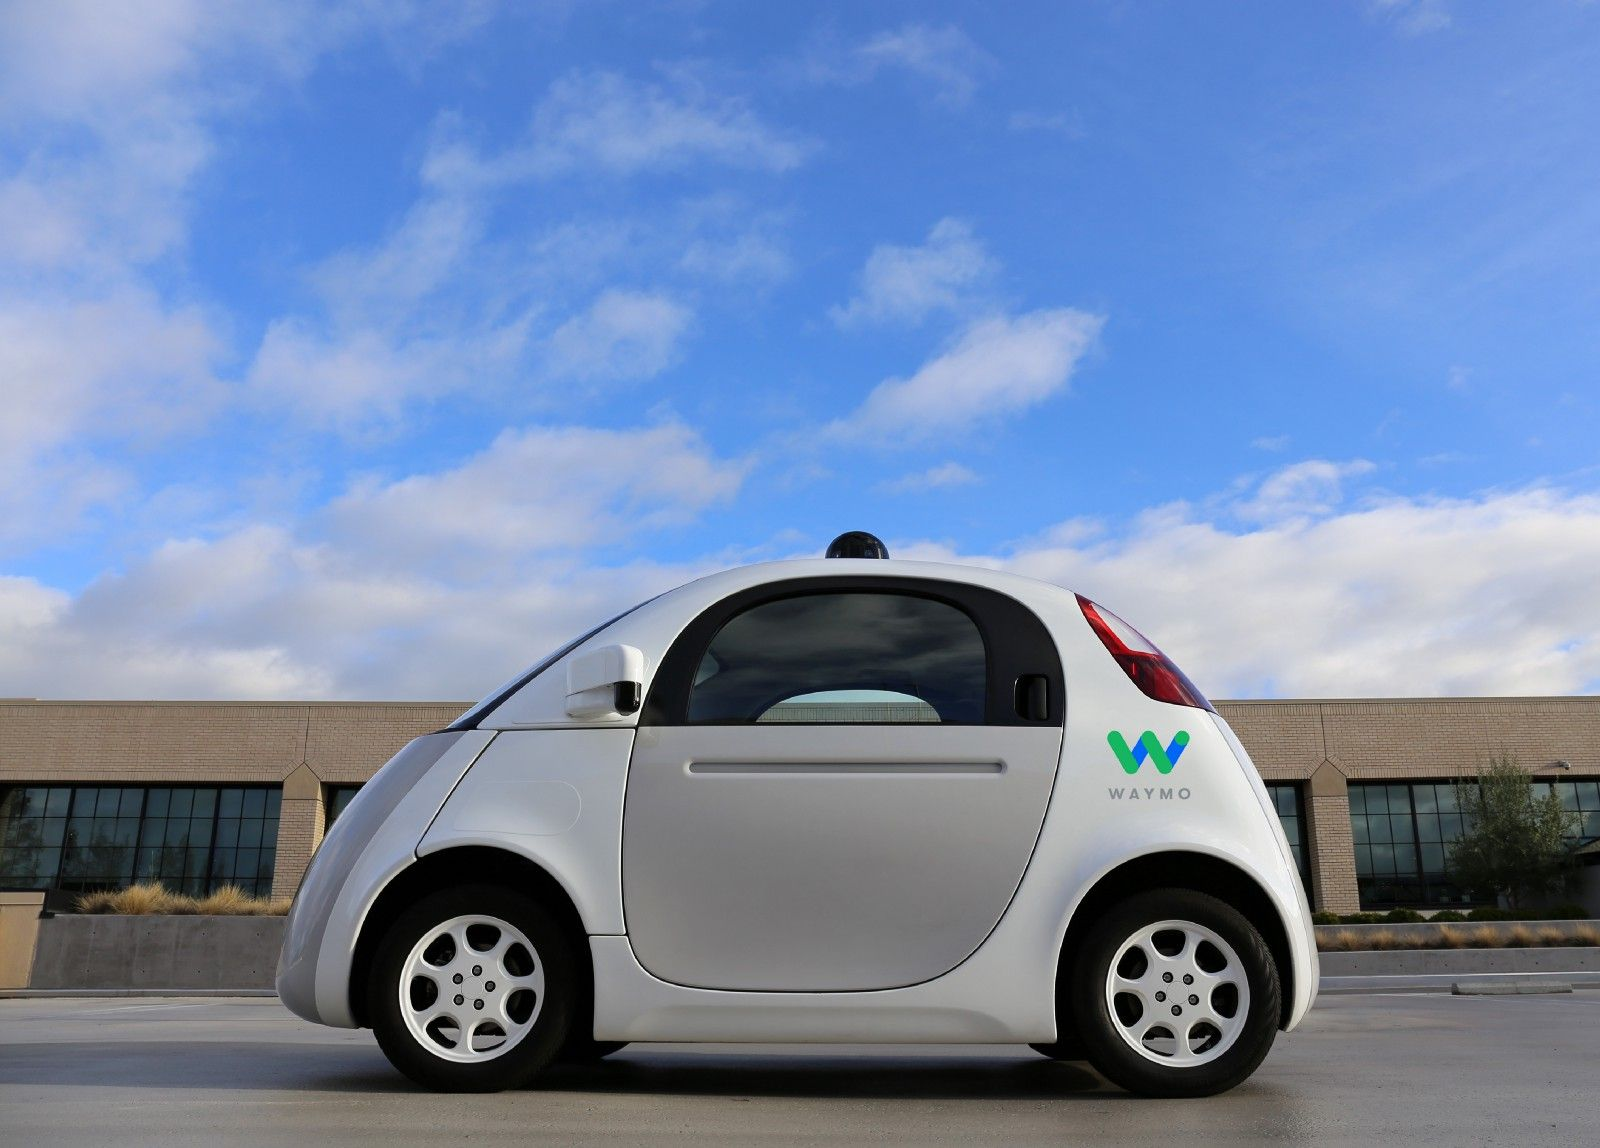 Court documents accidentally reveal costs for the company's self-driving car project between 2009 and 2015